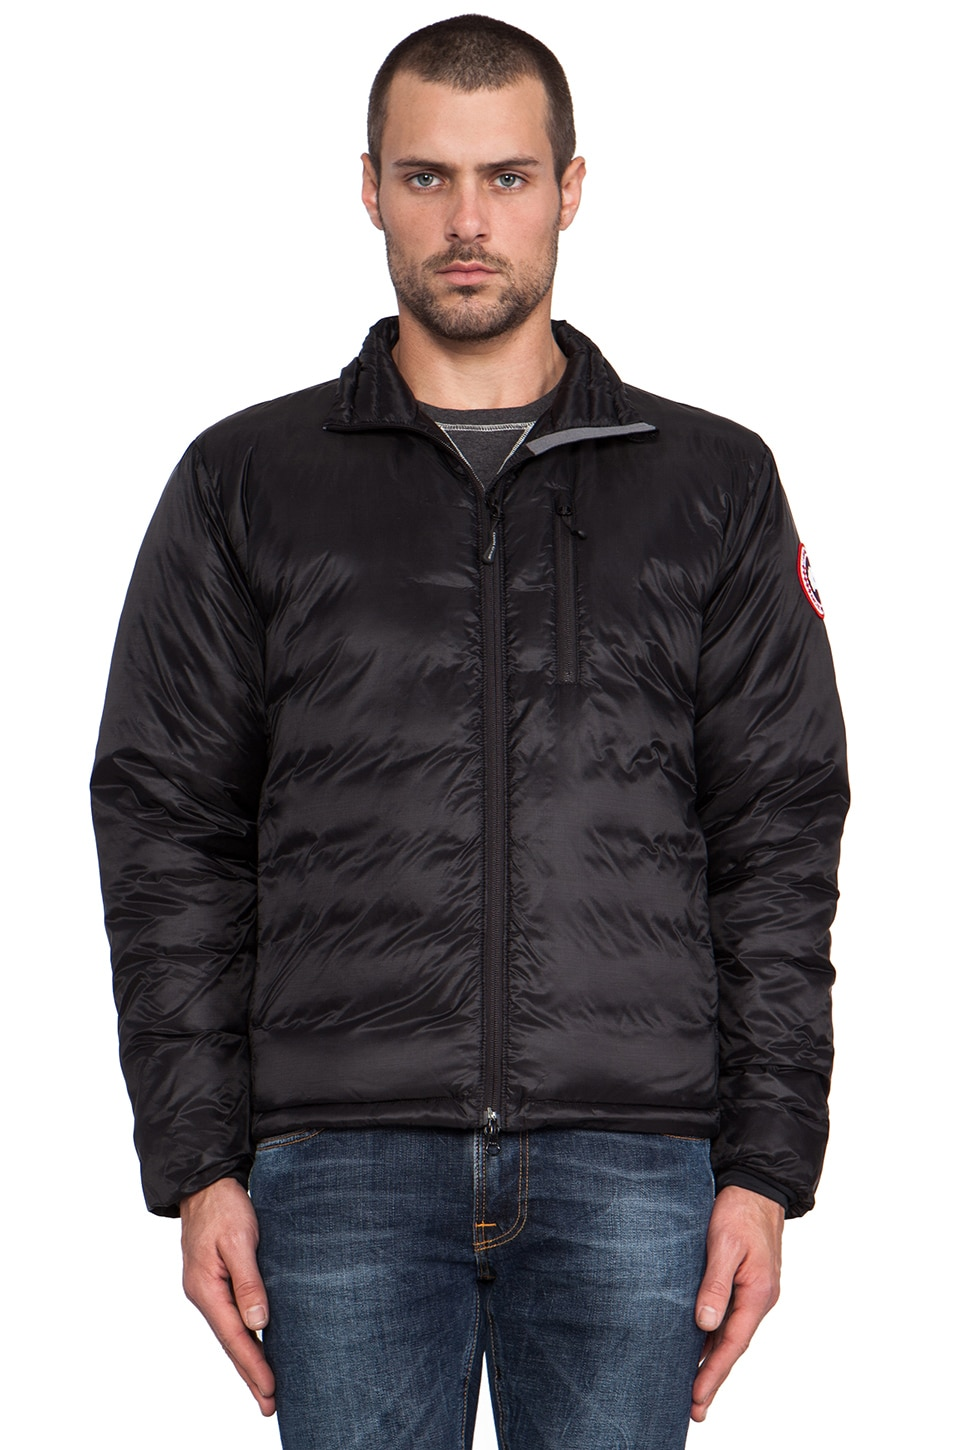 Canada Goose Lodge Jacket in Black